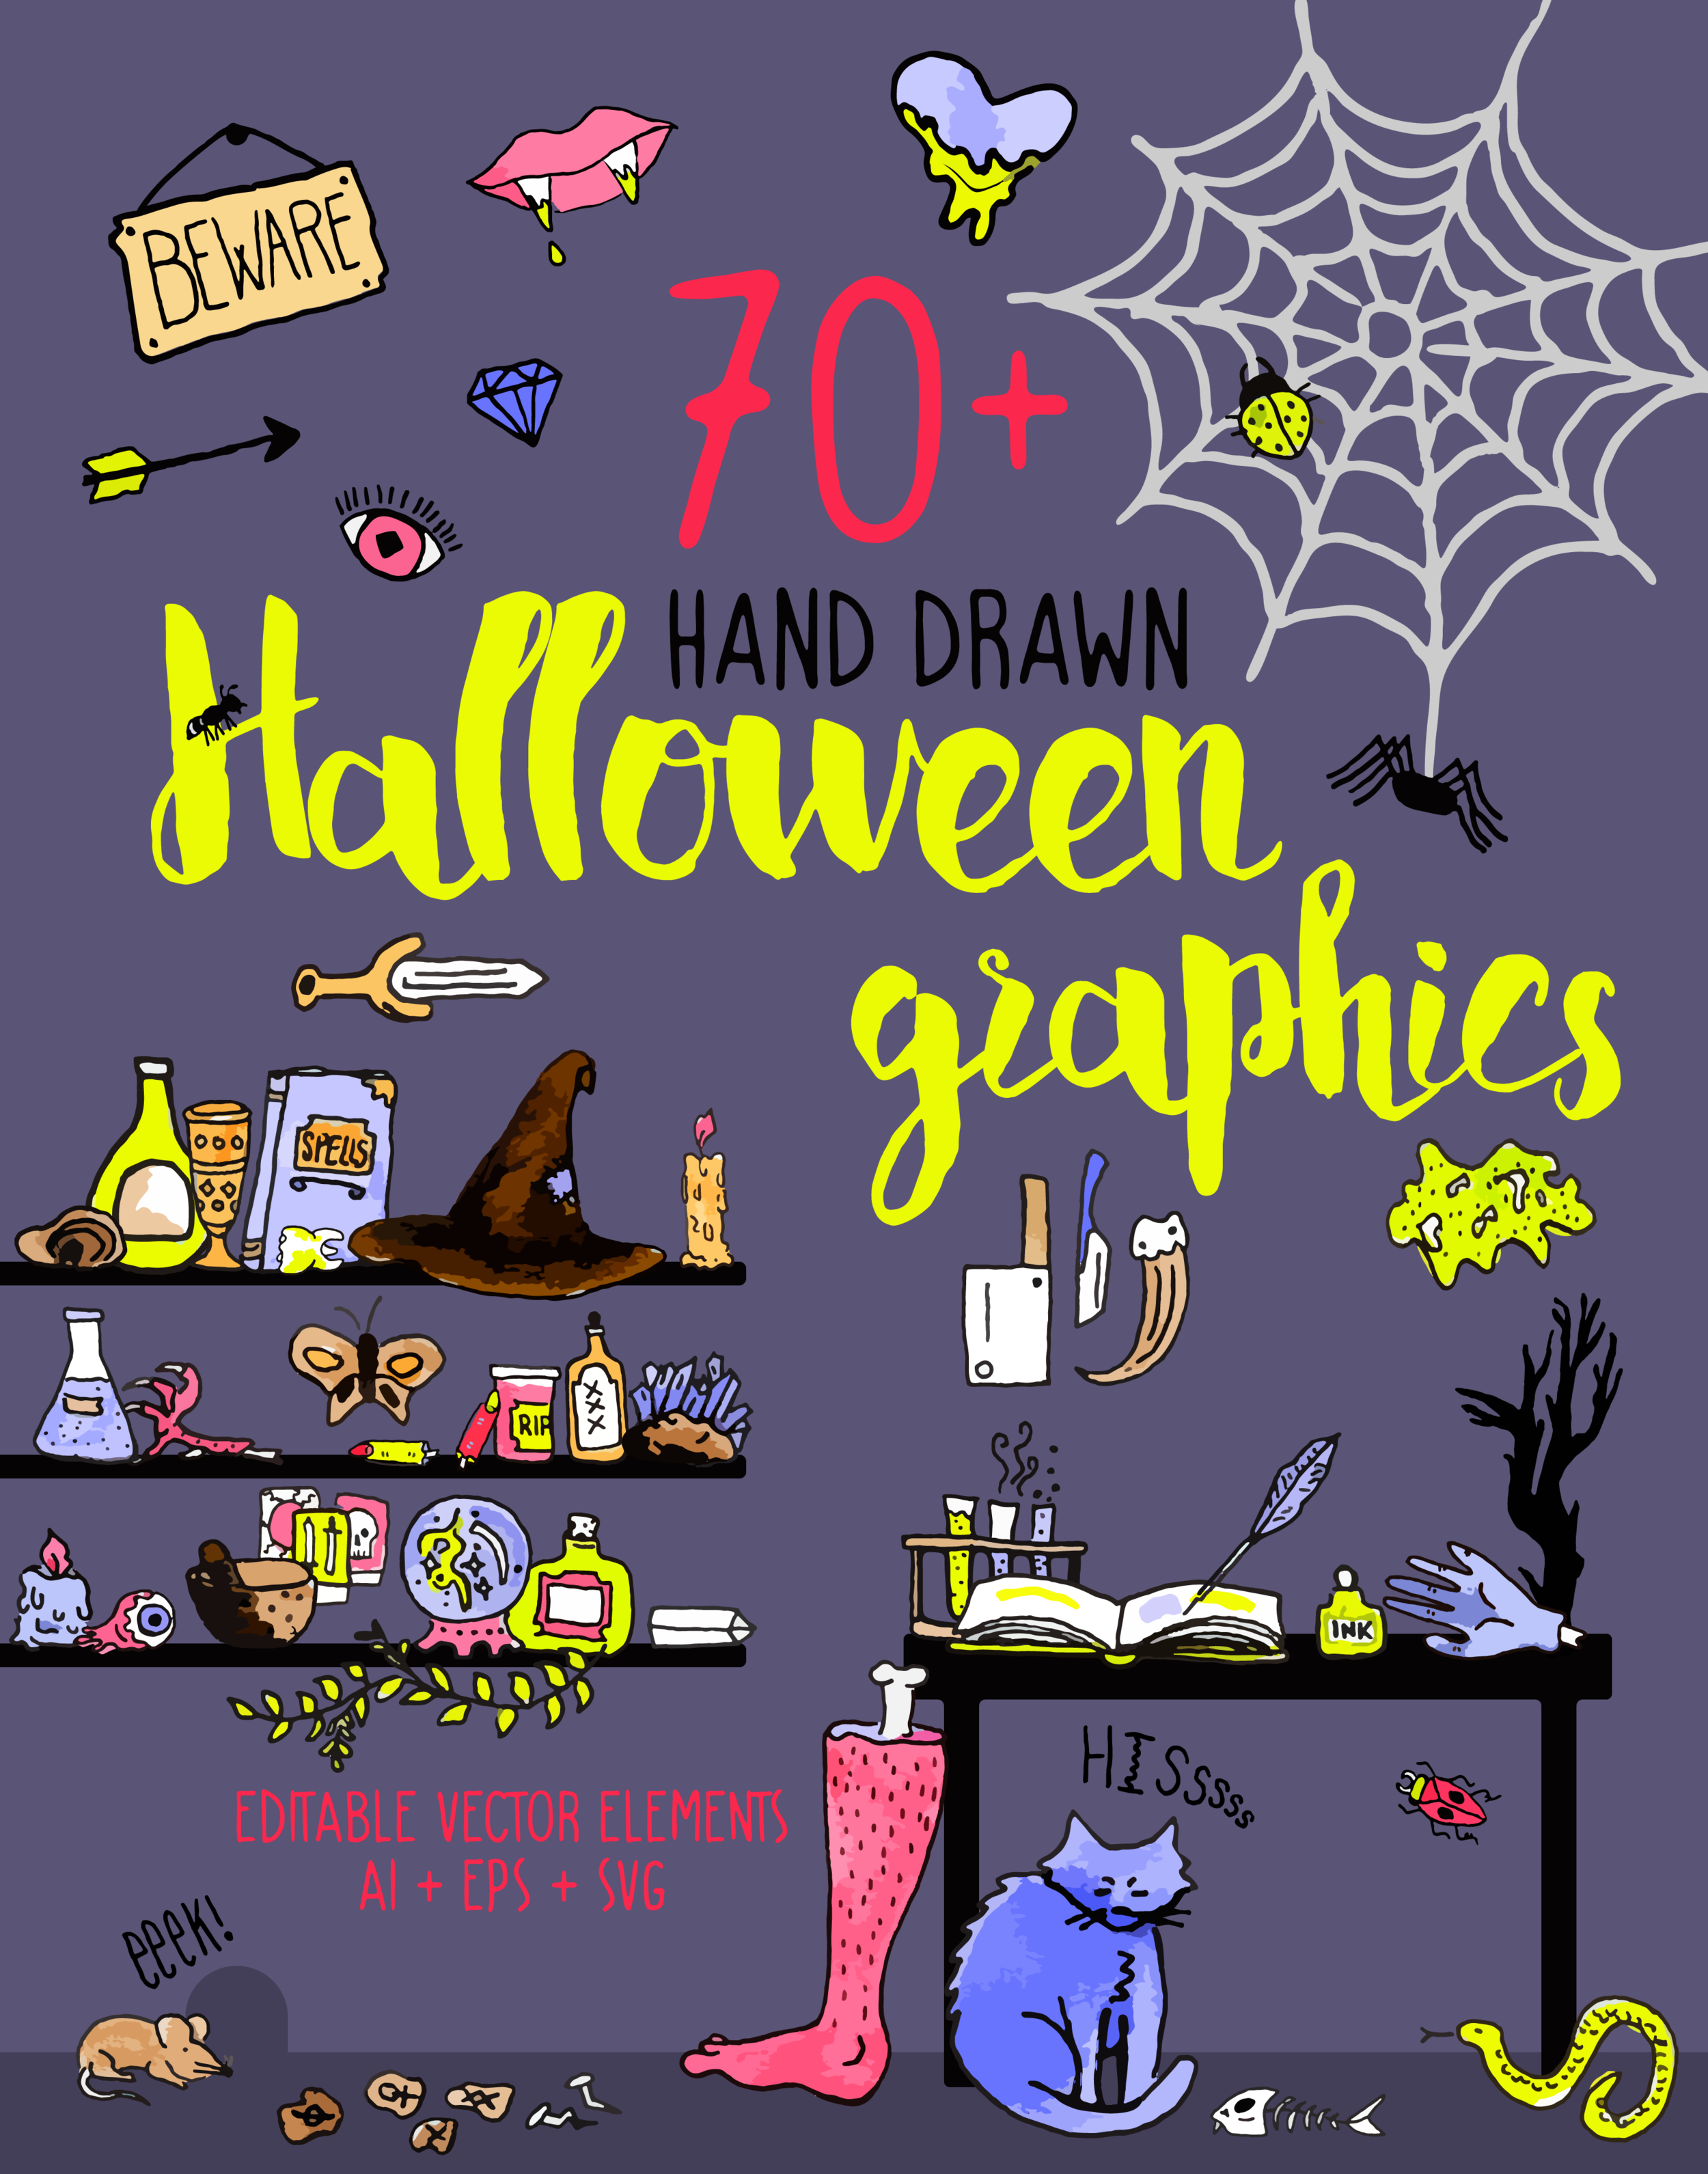 Halloween Graphics // $8 - 70+ Hand-drawn vectorized elements! Enjoy these spooky illustrations for Halloween!